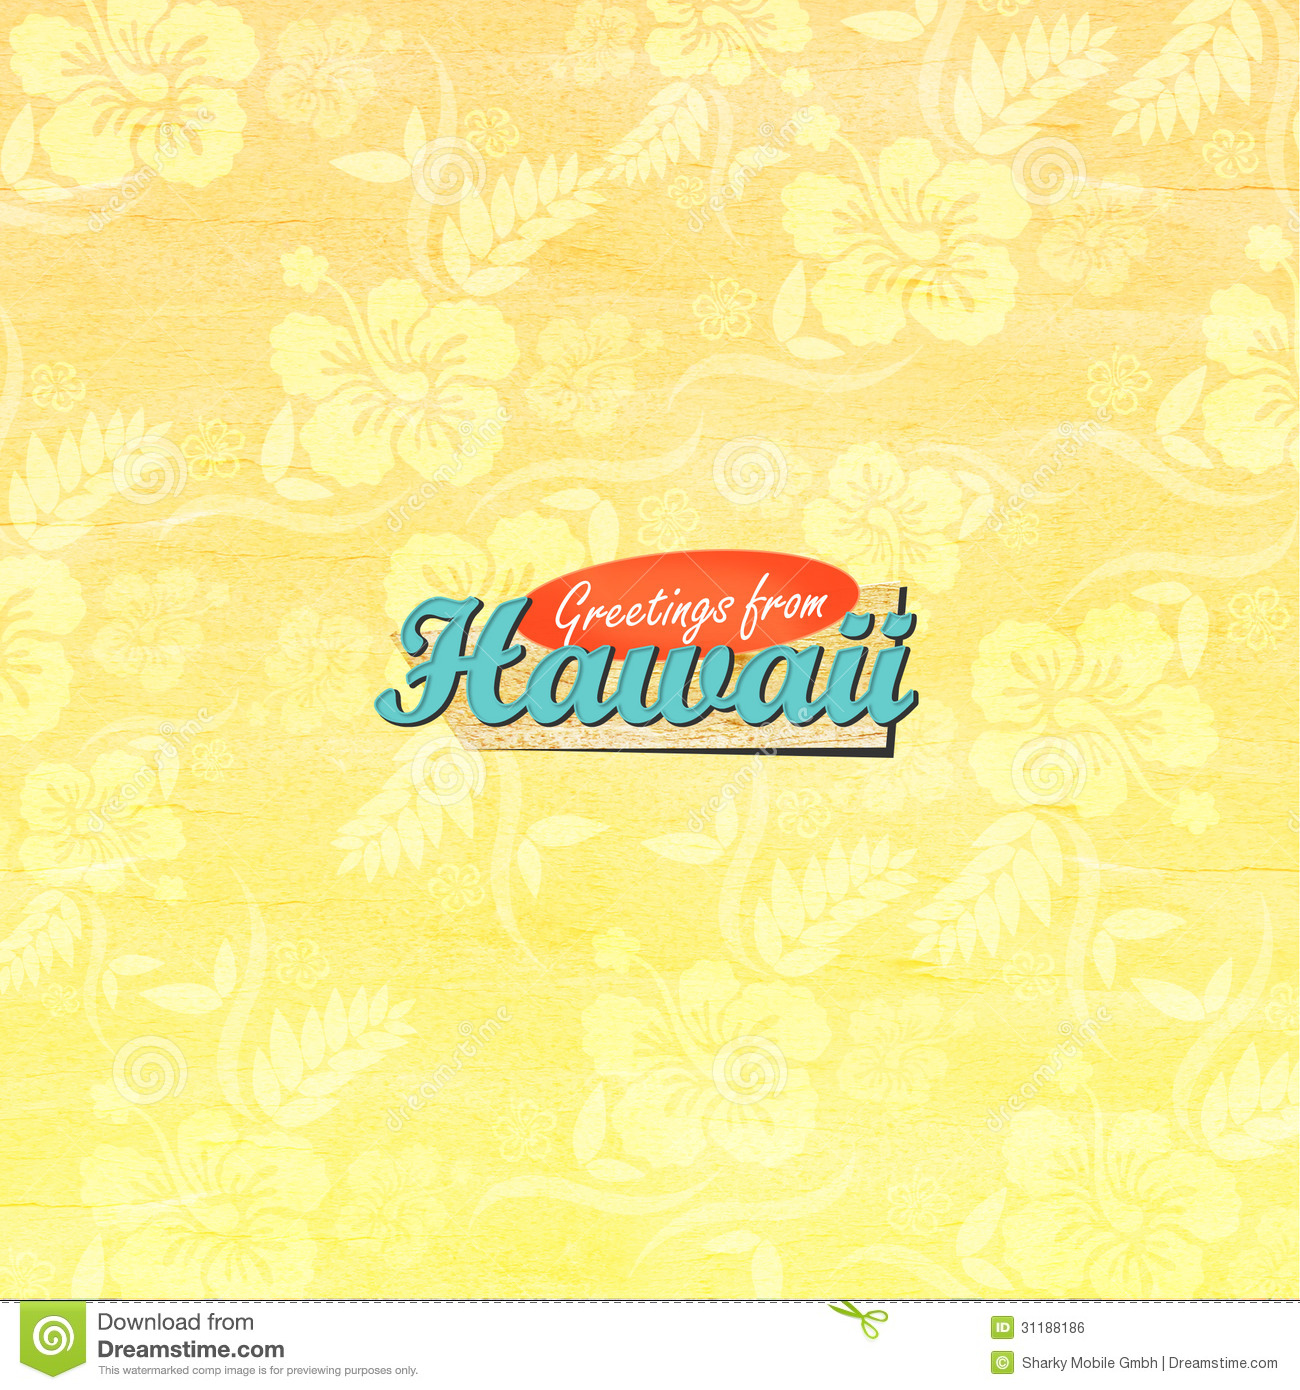 Greetings from hawaii stock illustration illustration of flowers greetings from hawaii kristyandbryce Choice Image